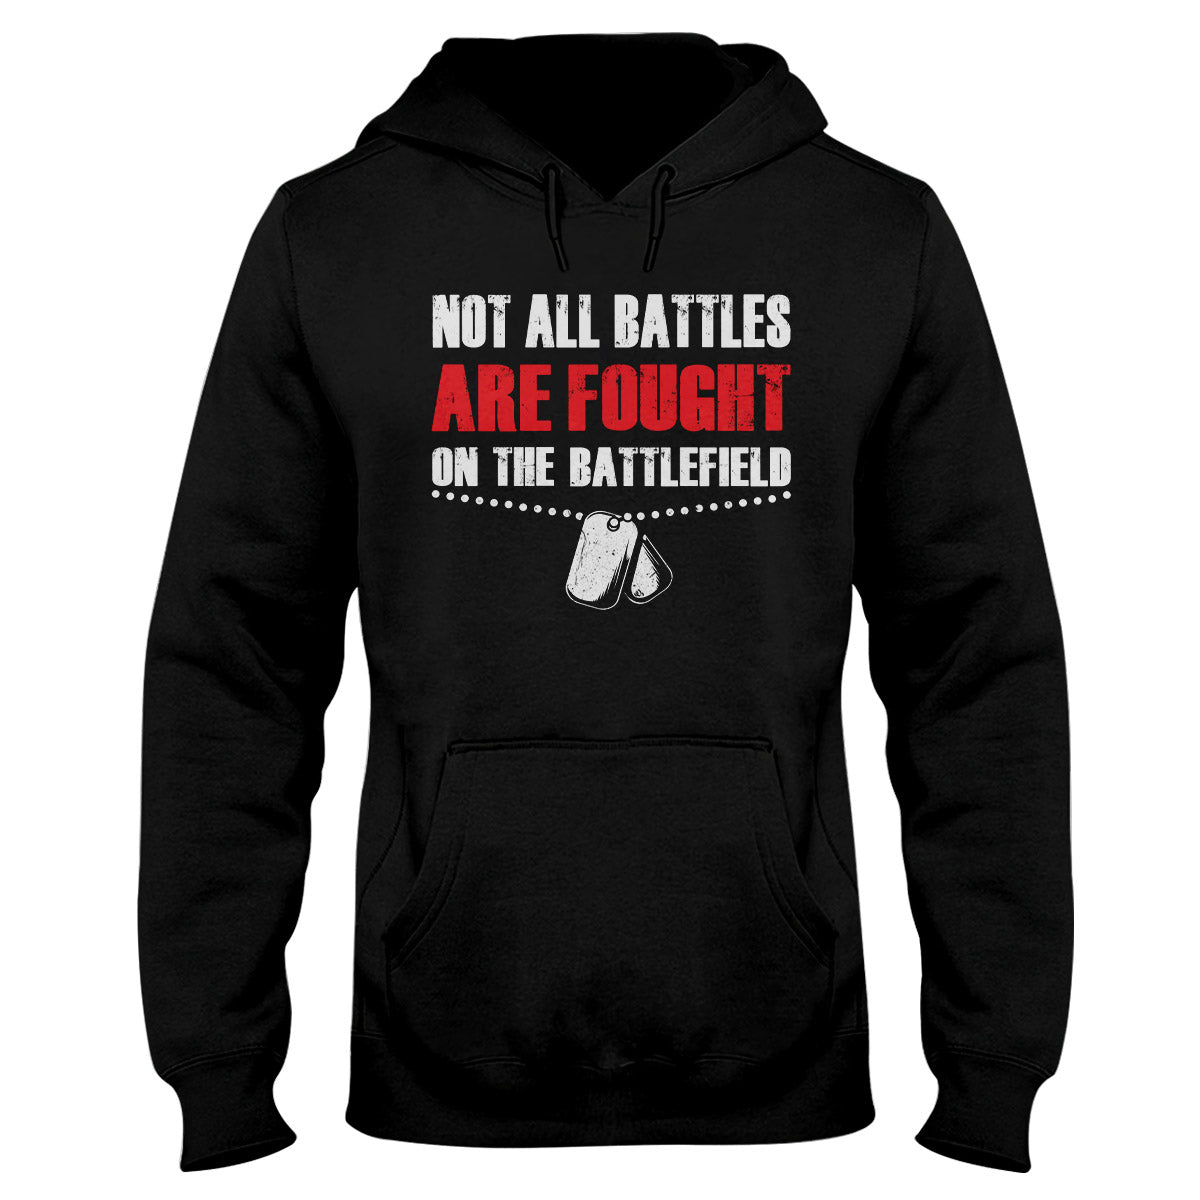 Not All Battles Are Fought On The Battlefield Chain PTSD Awareness Hoodie